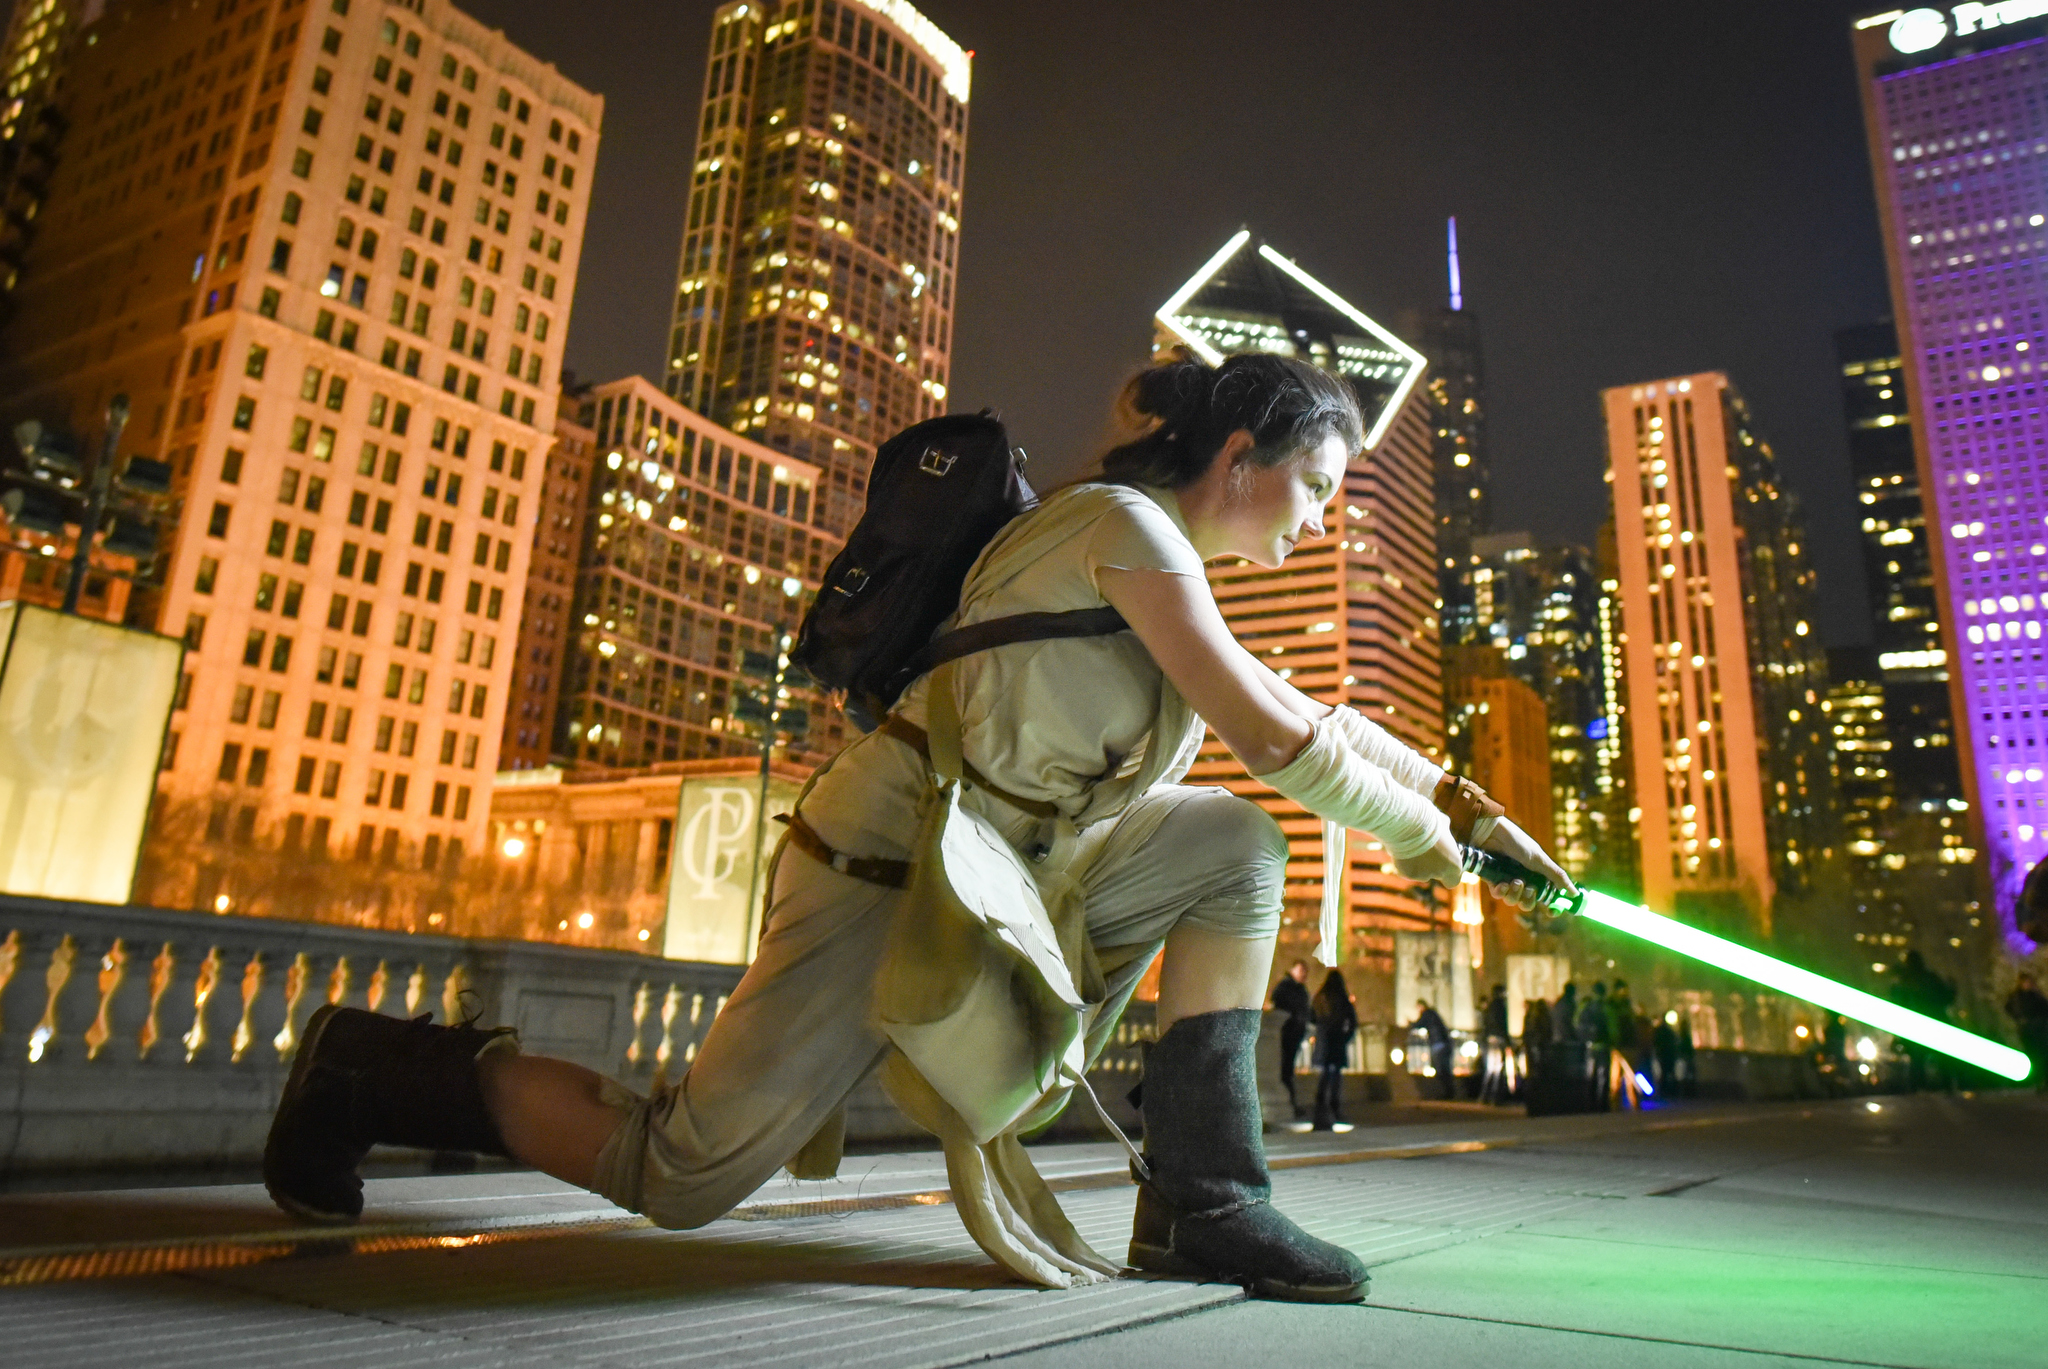 2019.04.14 - Star Wars Celebration Chicago 288893.JPG